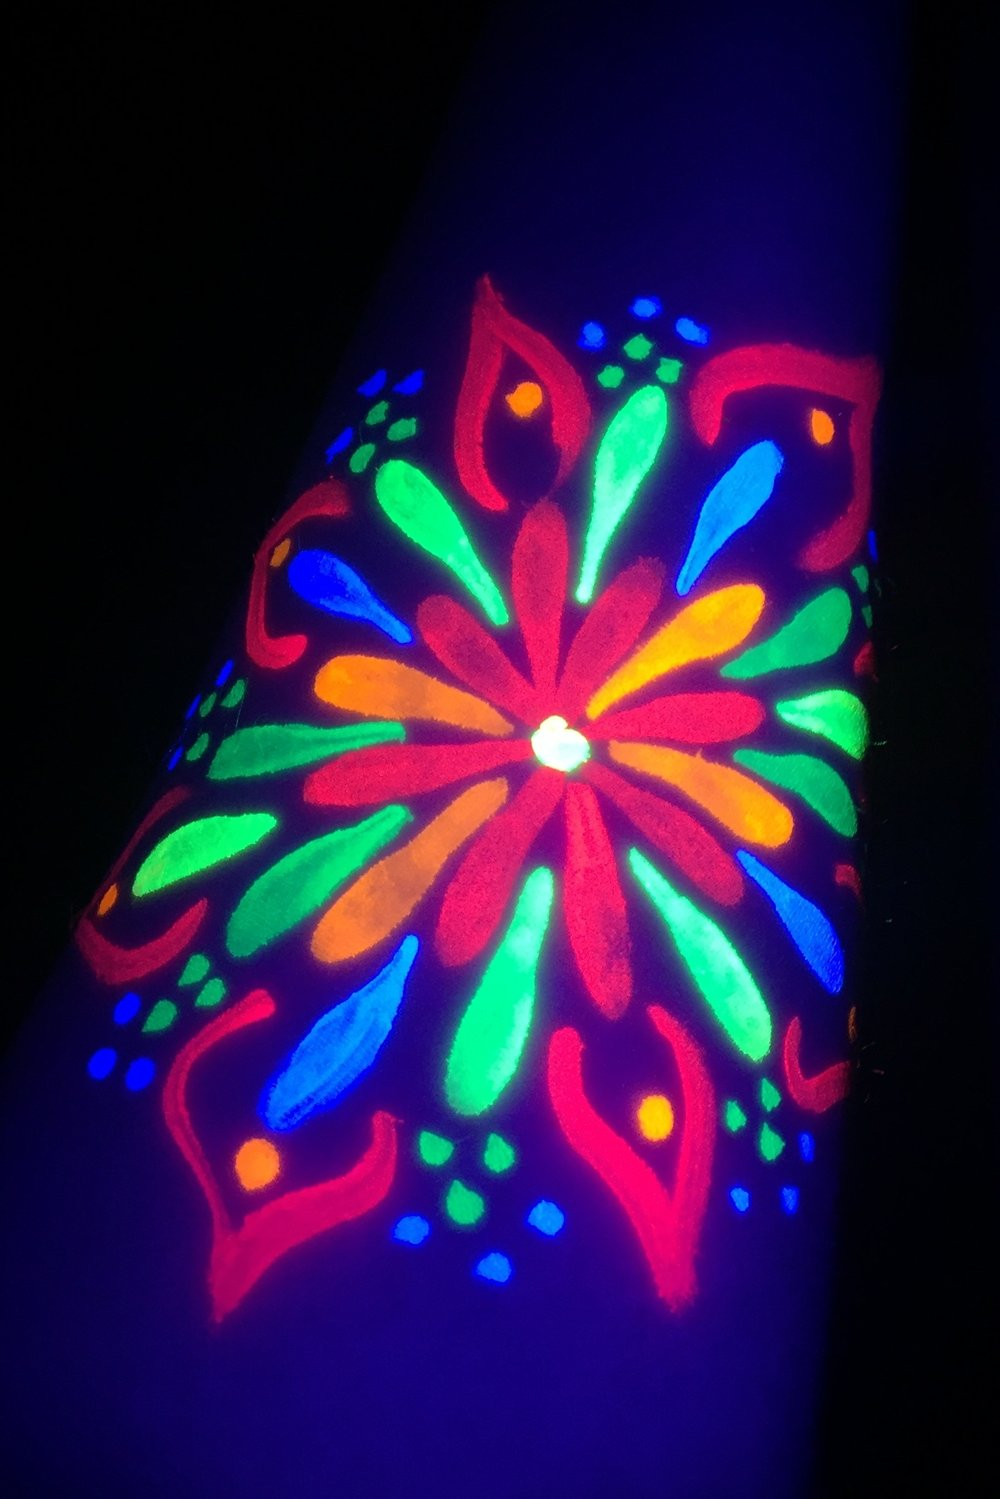 Blacklight / UV Style Arm Art is Popular in Los Angeles!